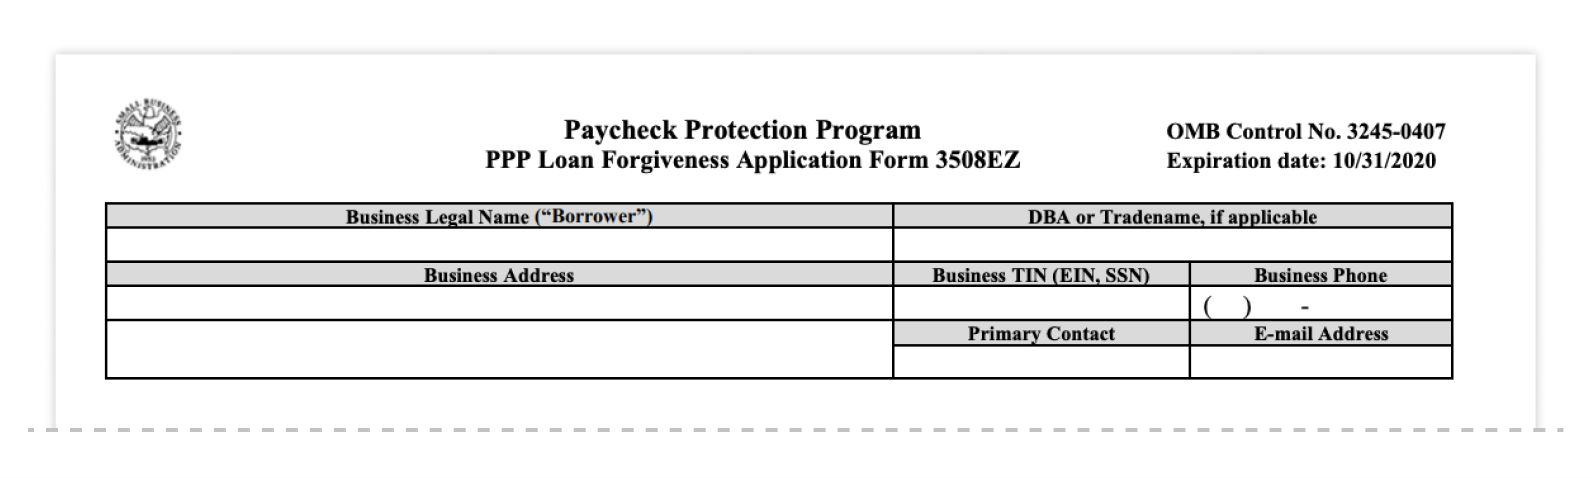 ppp loan forgiveness application form 3508ez business information